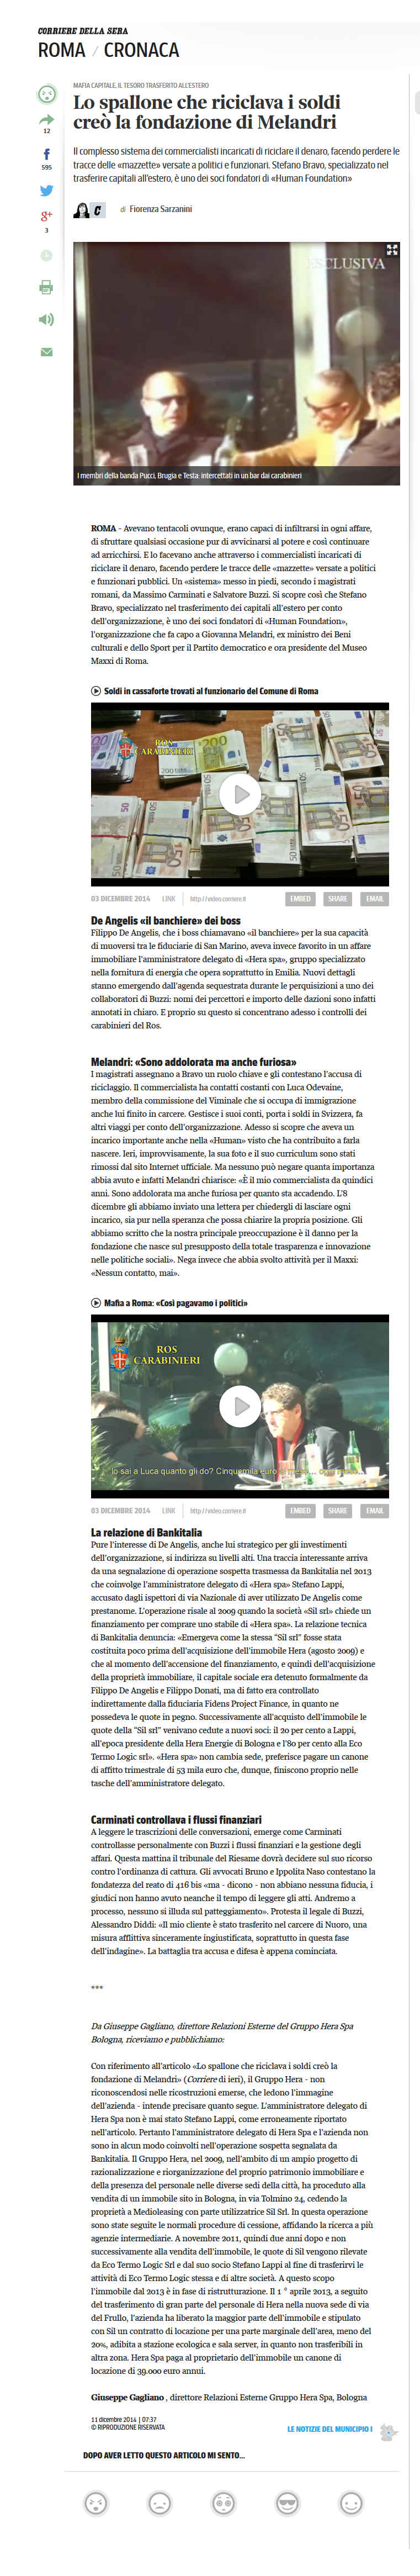 screenshot-roma-corriere-it-2016-10-24-11-36-47